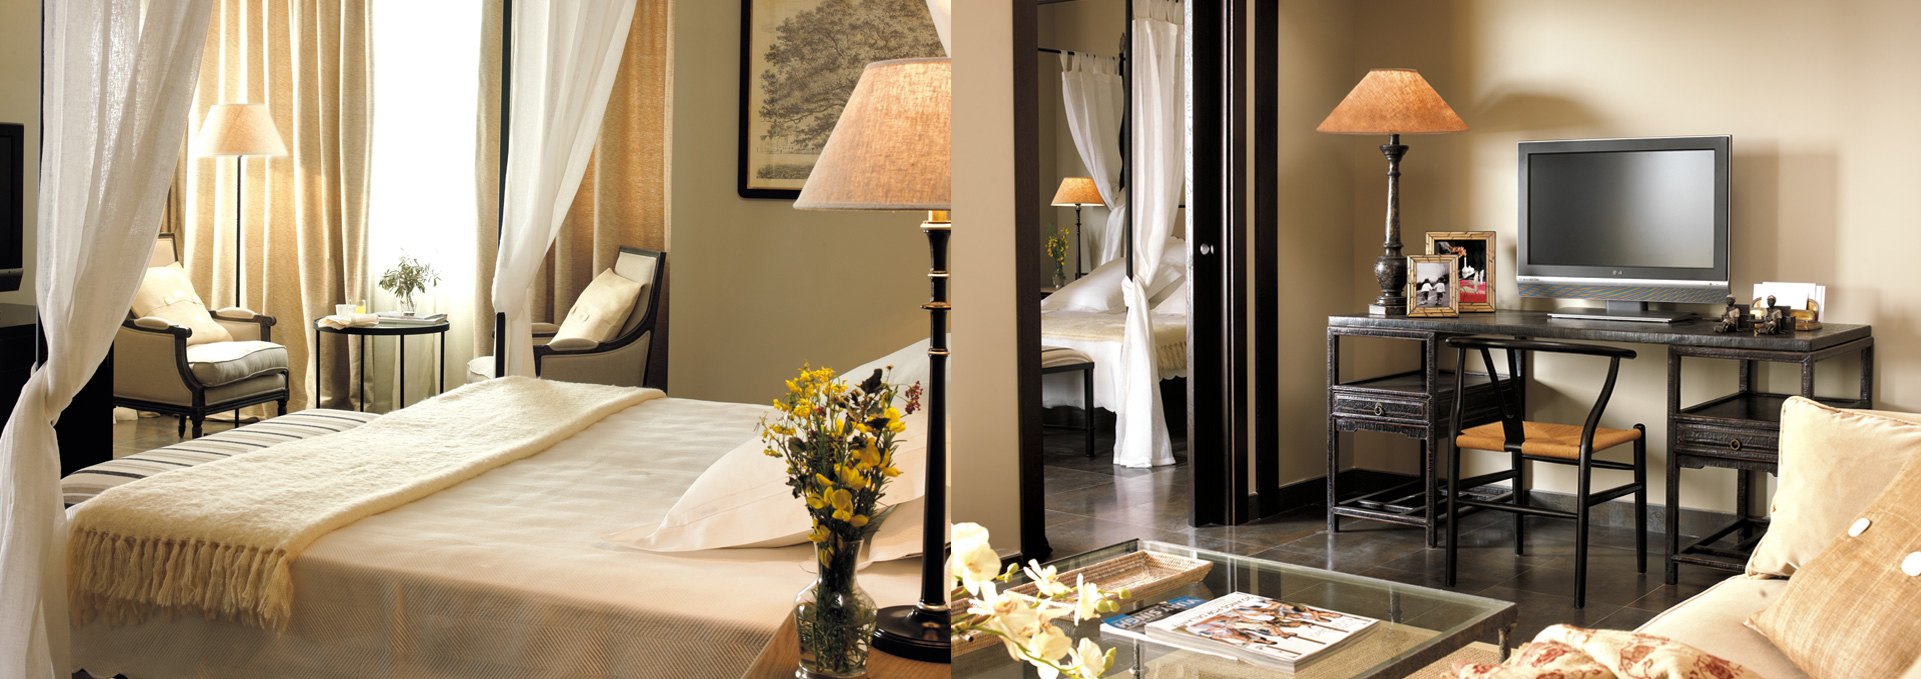 5 star hotels in Altea - Suite | Asia Gardens Hotel